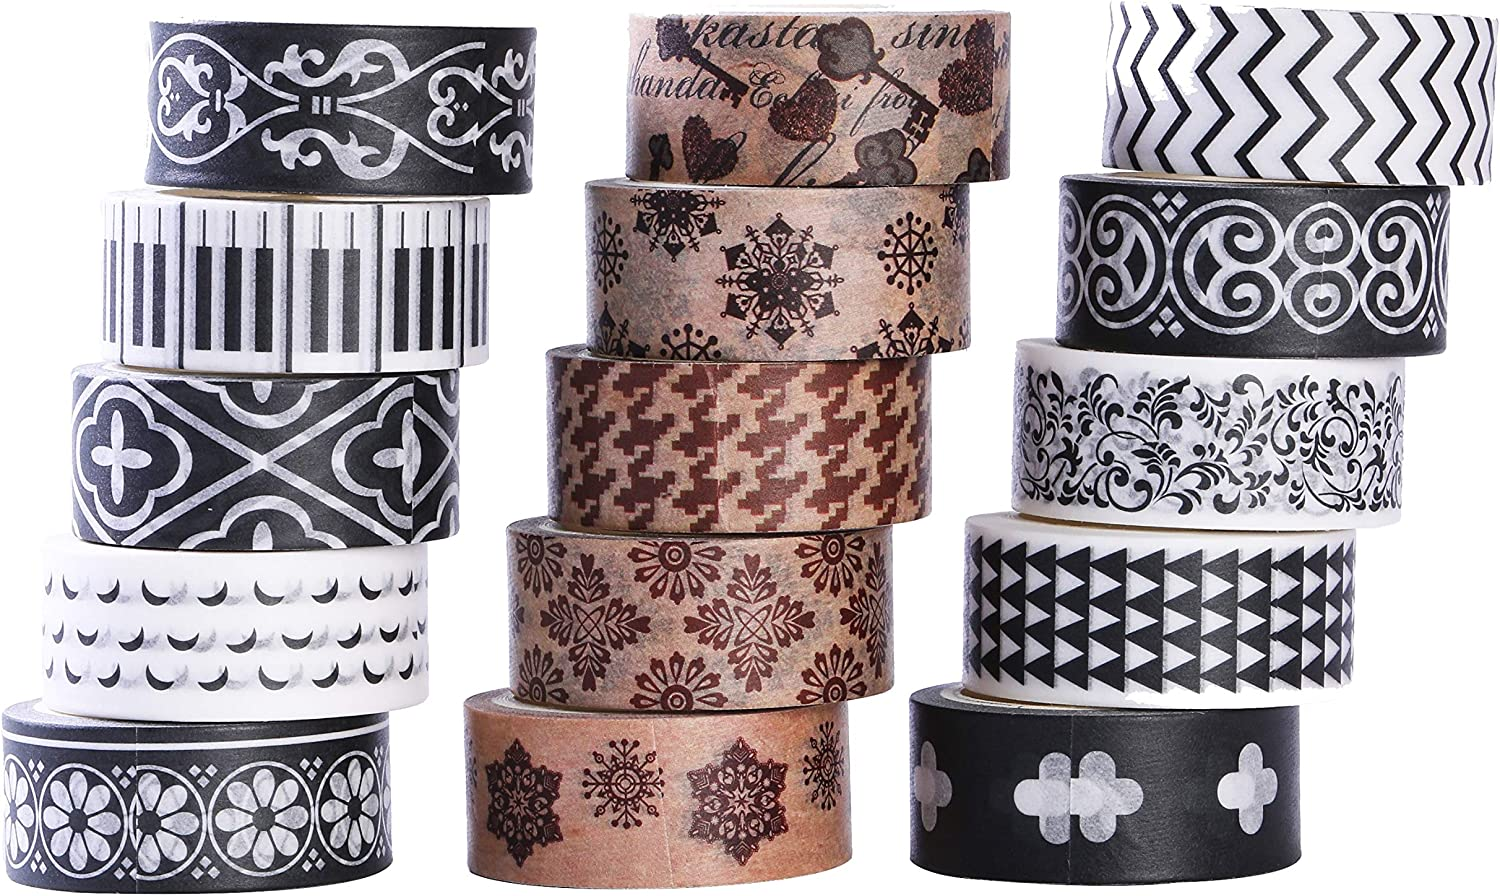 DIY Gift Wrapping Scrapbooking and Craft 27 Rolls Washi Tape Set Sticky Adhesive Paper Masking Tape Decorative Sticker with Lovely Printed Patterns and Long-Lasting Colors